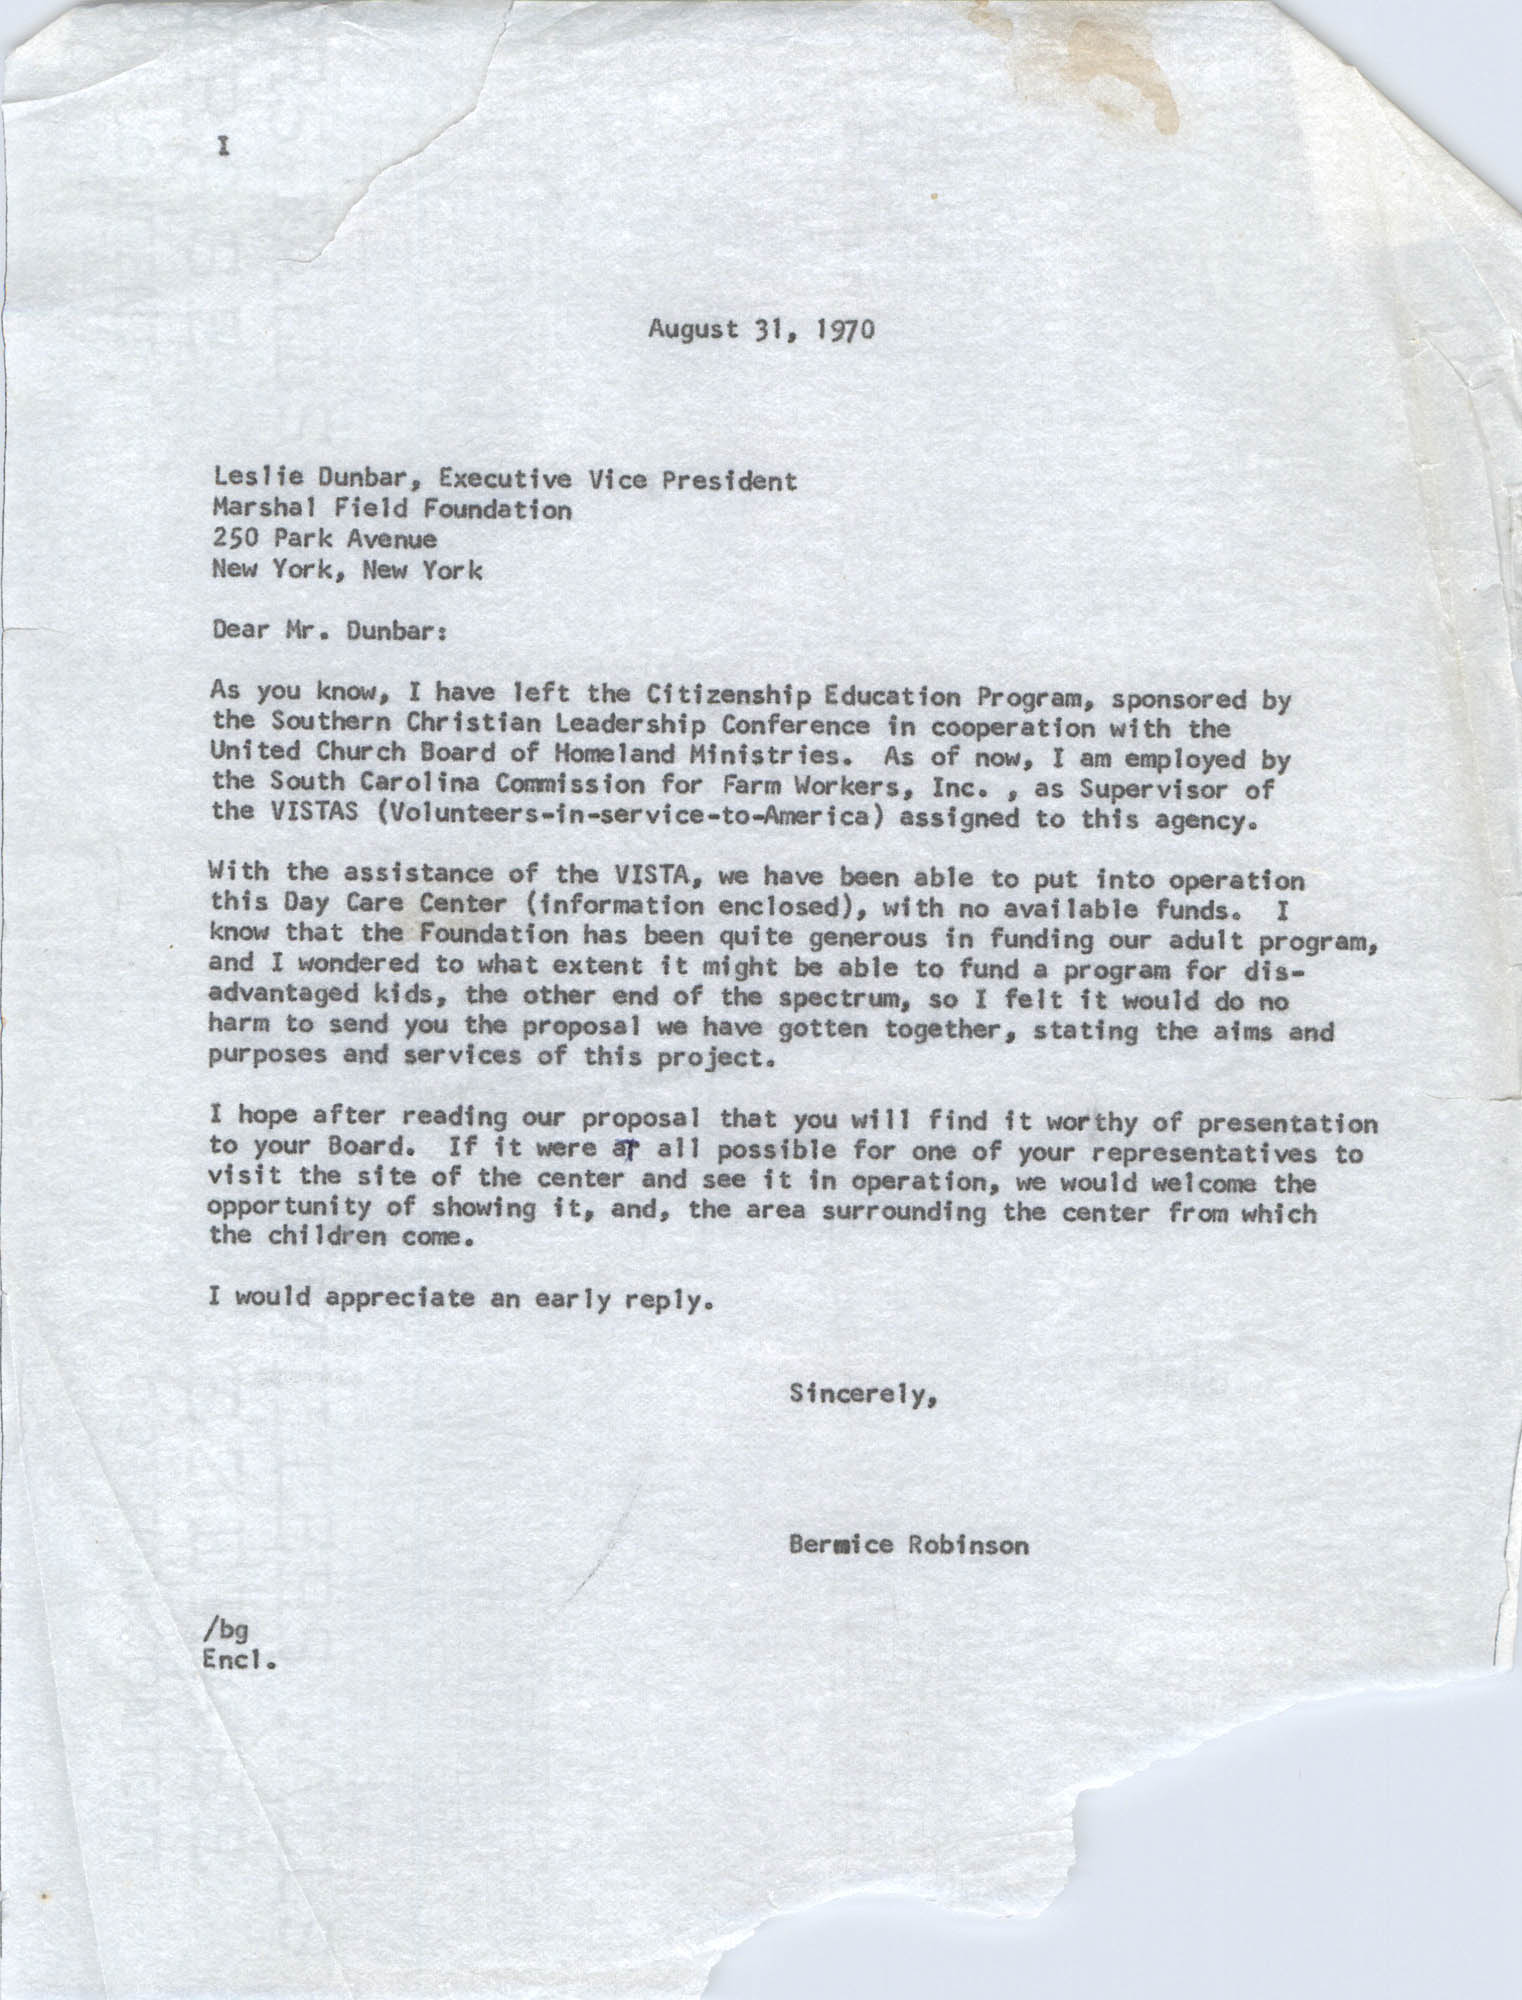 Letter from Bernice Robinson to Leslie Dunbar, August 31, 1970